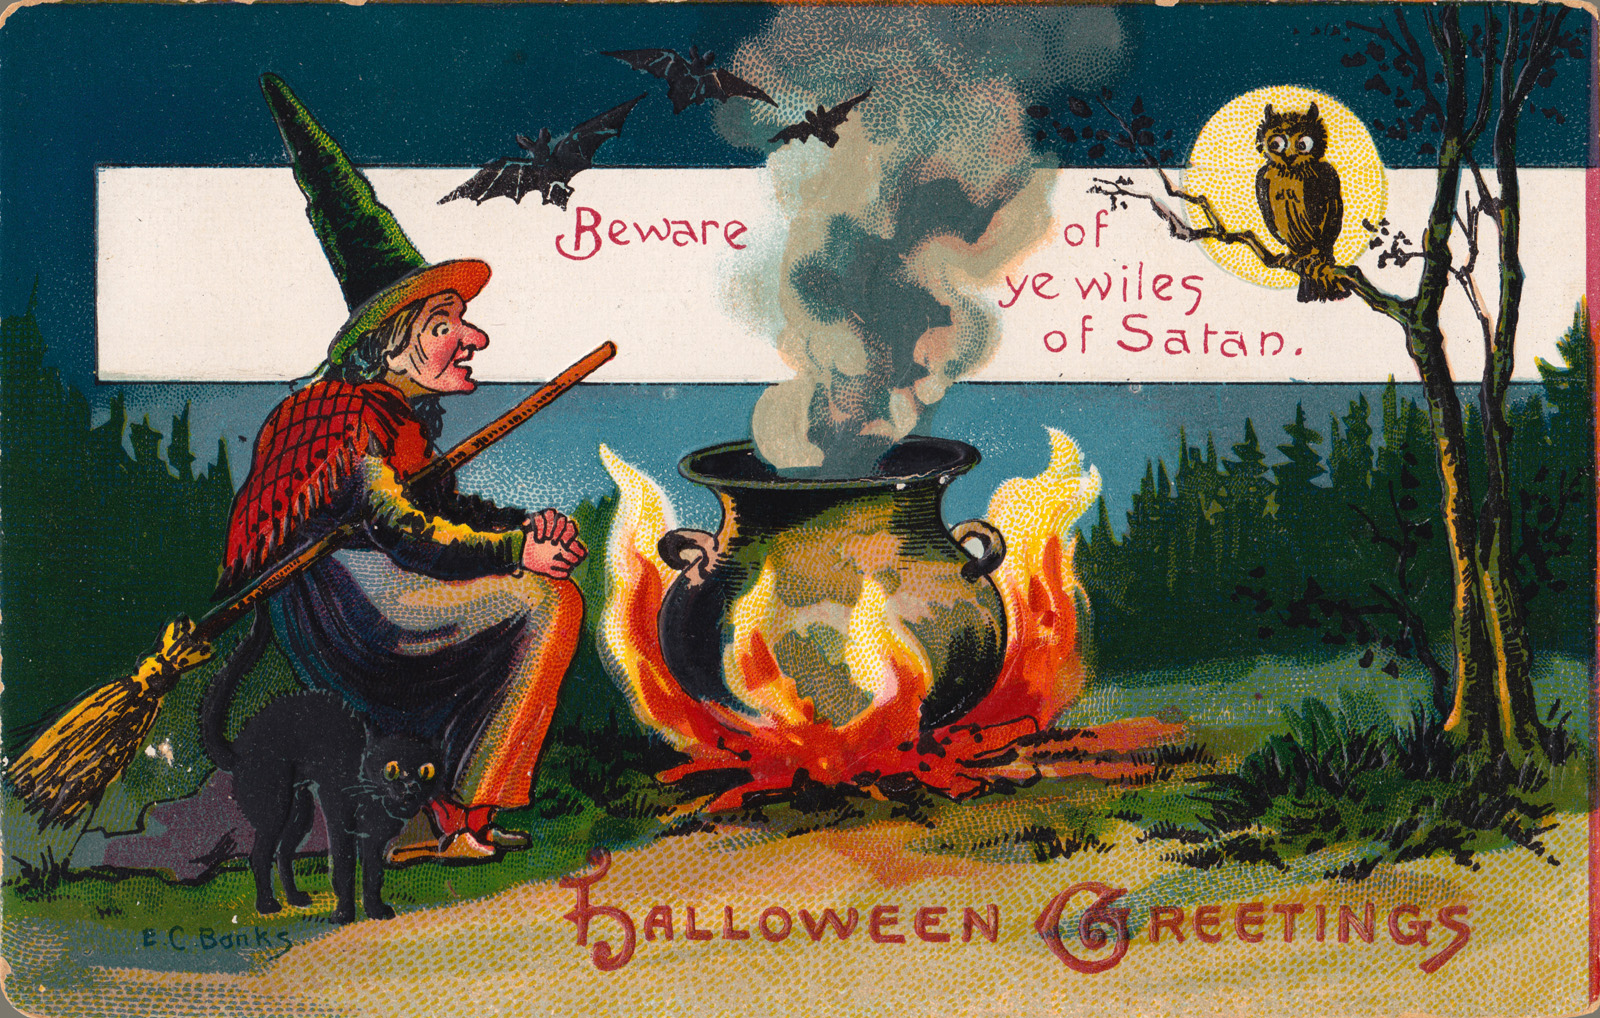 Free vintage clip art images vintage halloween greeting cards vintage halloween greeting card featuring a witch with broom seating near the boiling pot m4hsunfo